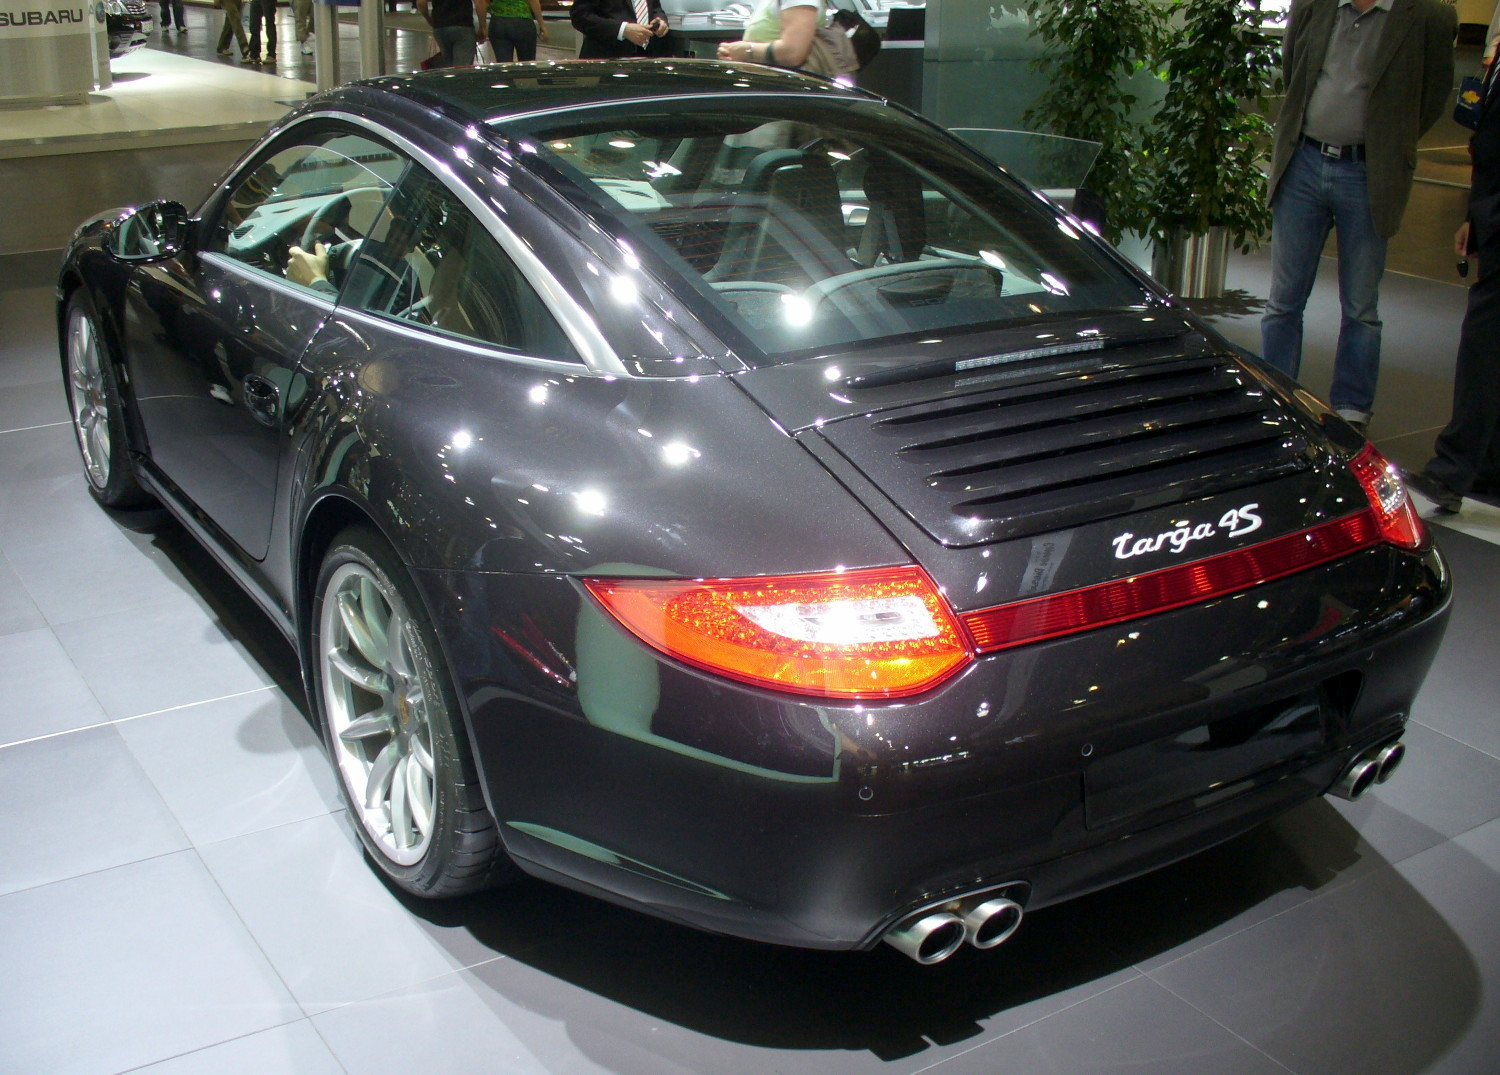 file porsche 911 targa 4s facelift heck jpg wikimedia commons. Black Bedroom Furniture Sets. Home Design Ideas